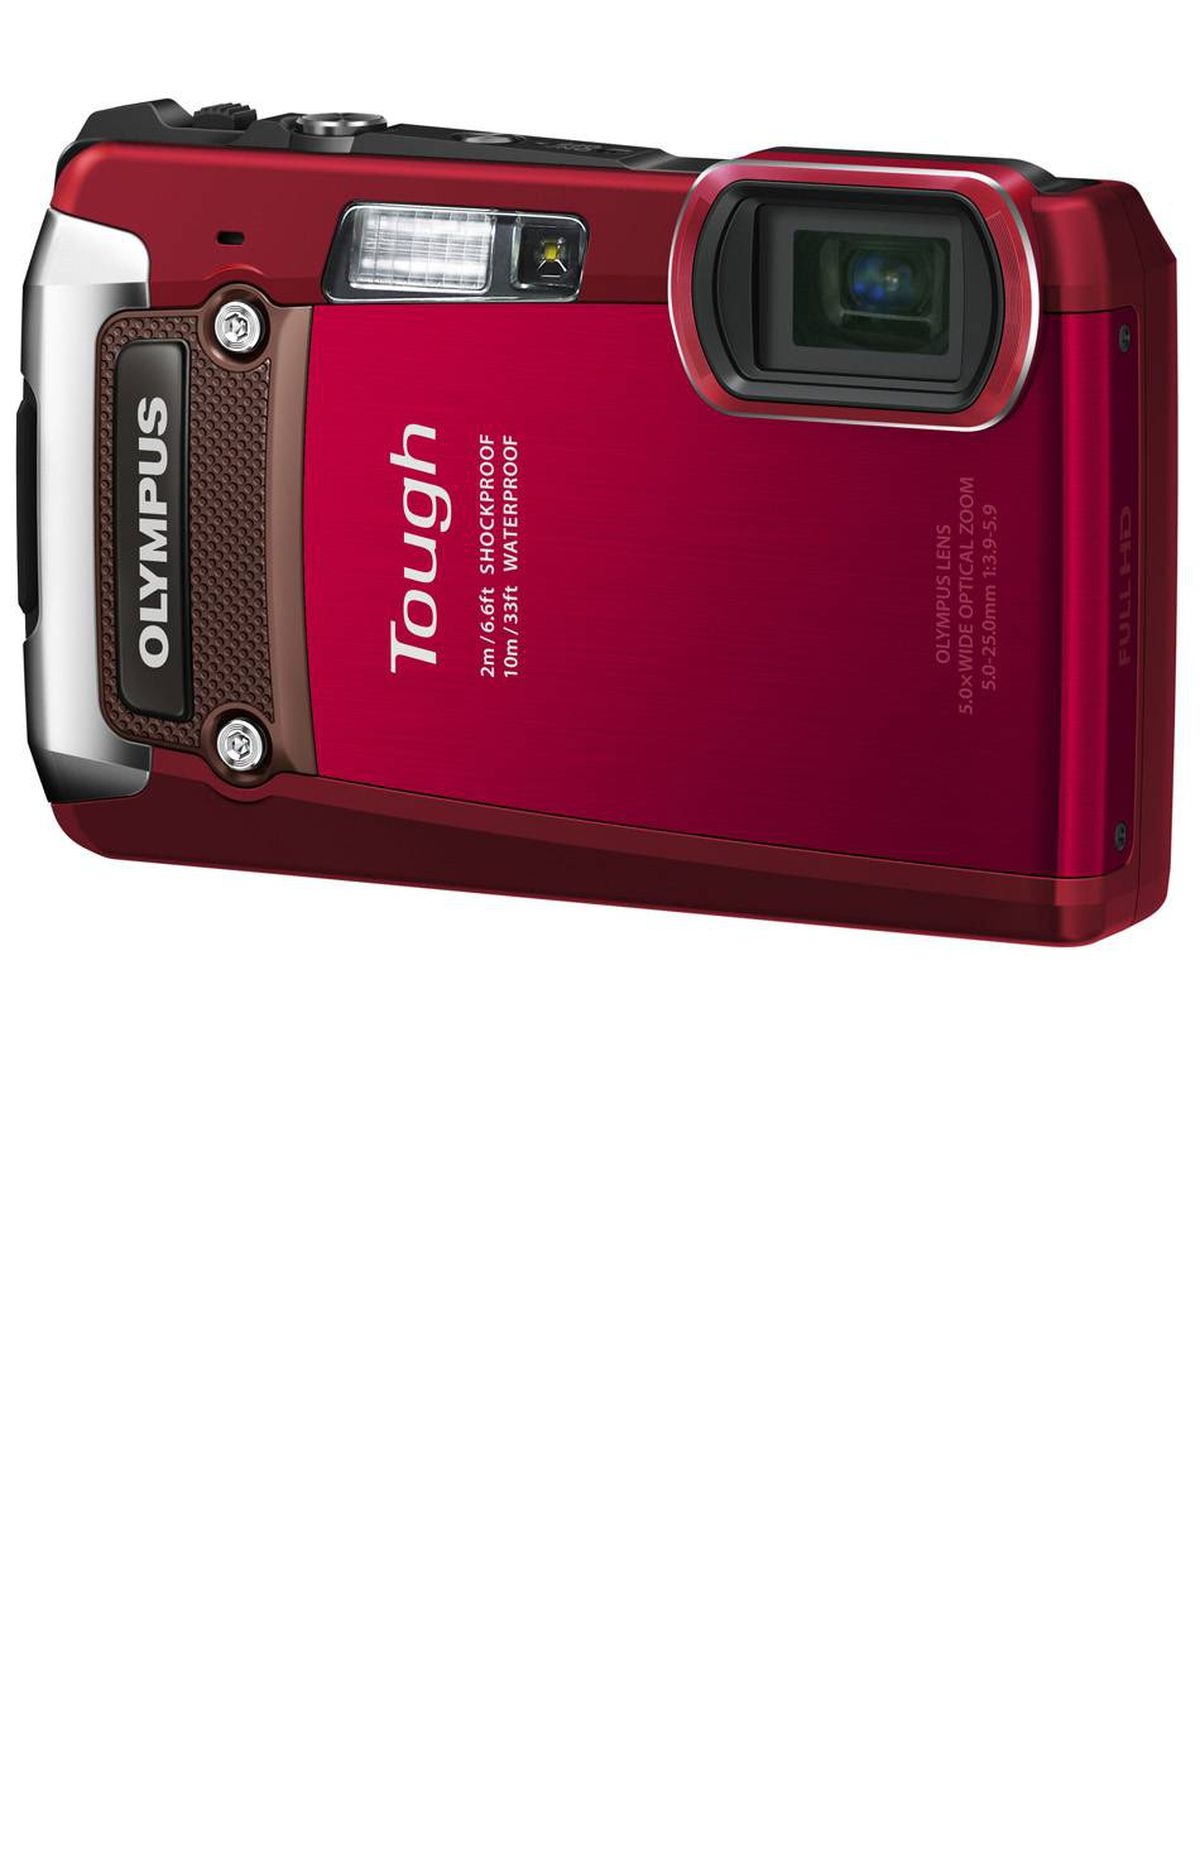 The unbreakable camera Built to endure extreme conditions, the Olympus TG-820 takes the worry out of taking photos on rough waters. The camera can withstand up to 100 kilograms of pressure without getting crushed. It takes 12 megapixel snapshots and HD video as deep as 10 metres underwater. $299.99; olympuscanada.com